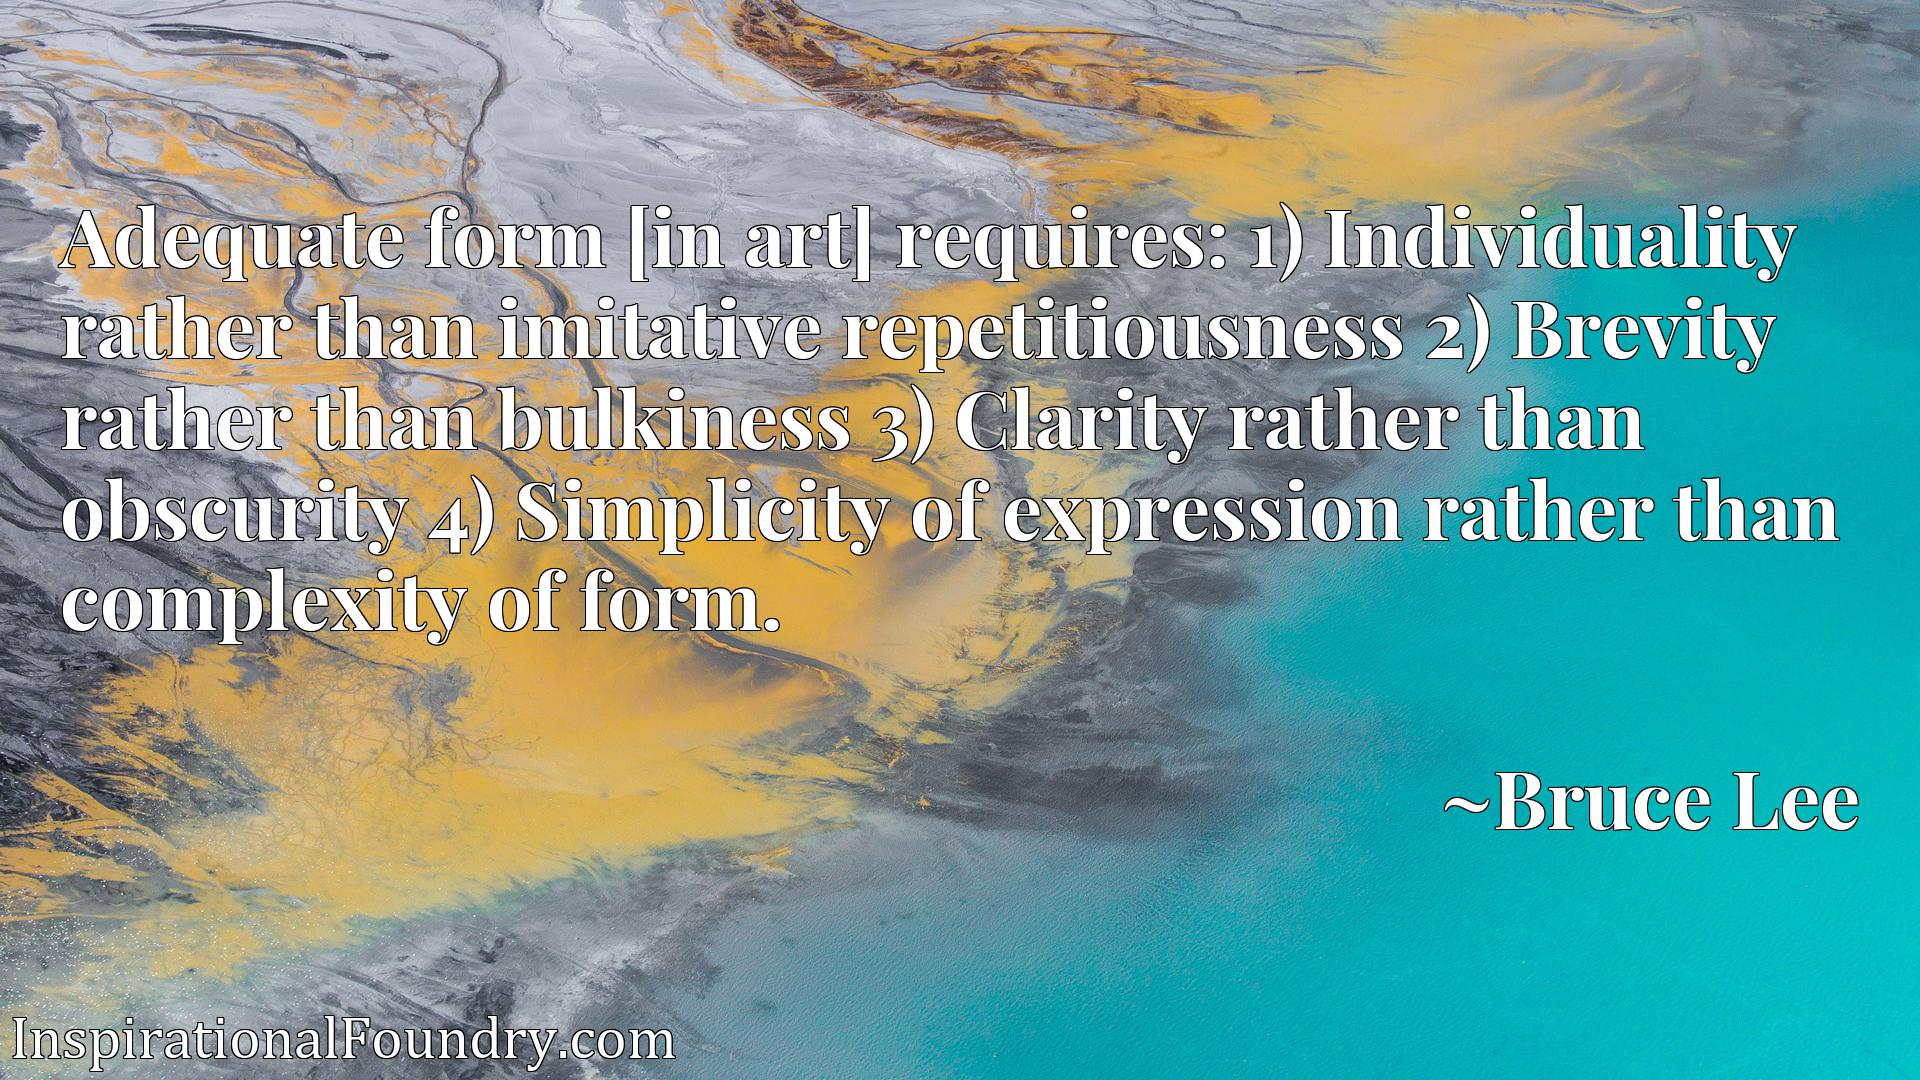 Adequate form [in art] requires: 1) Individuality rather than imitative repetitiousness 2) Brevity rather than bulkiness 3) Clarity rather than obscurity 4) Simplicity of expression rather than complexity of form.